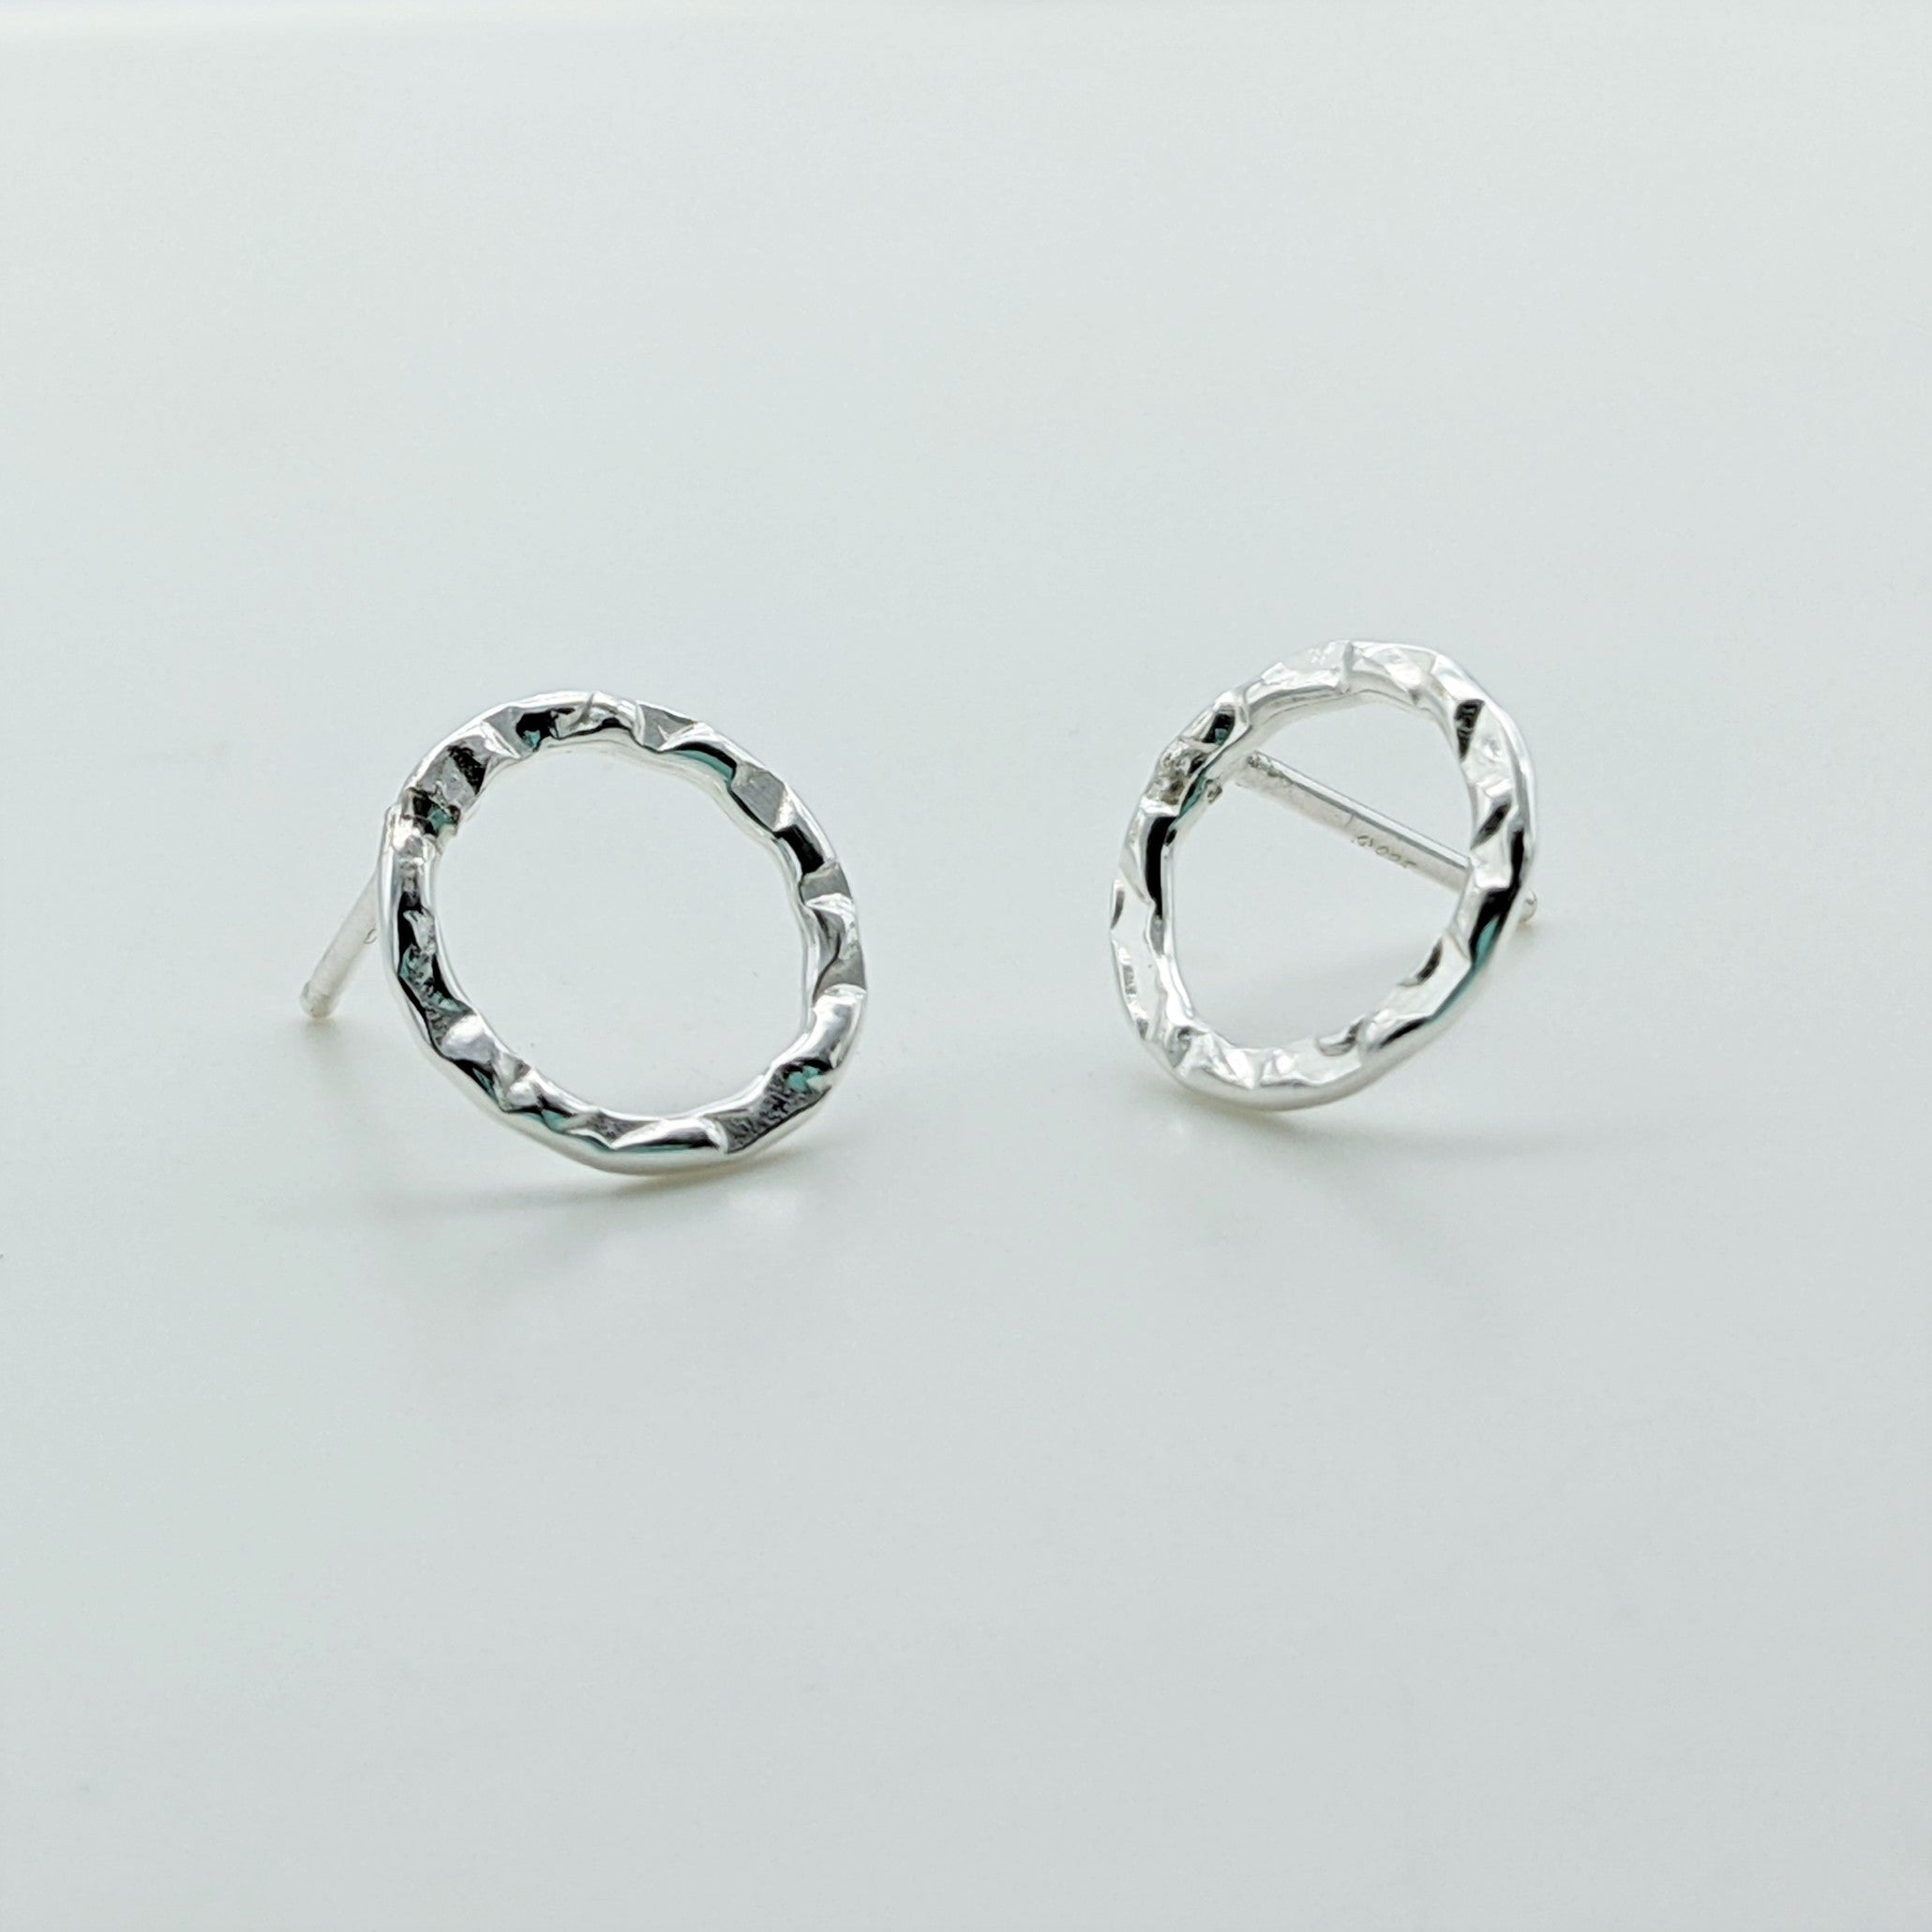 Open Circle Stud Earrings in Sterling Silver - Hammered Round Post Earrings